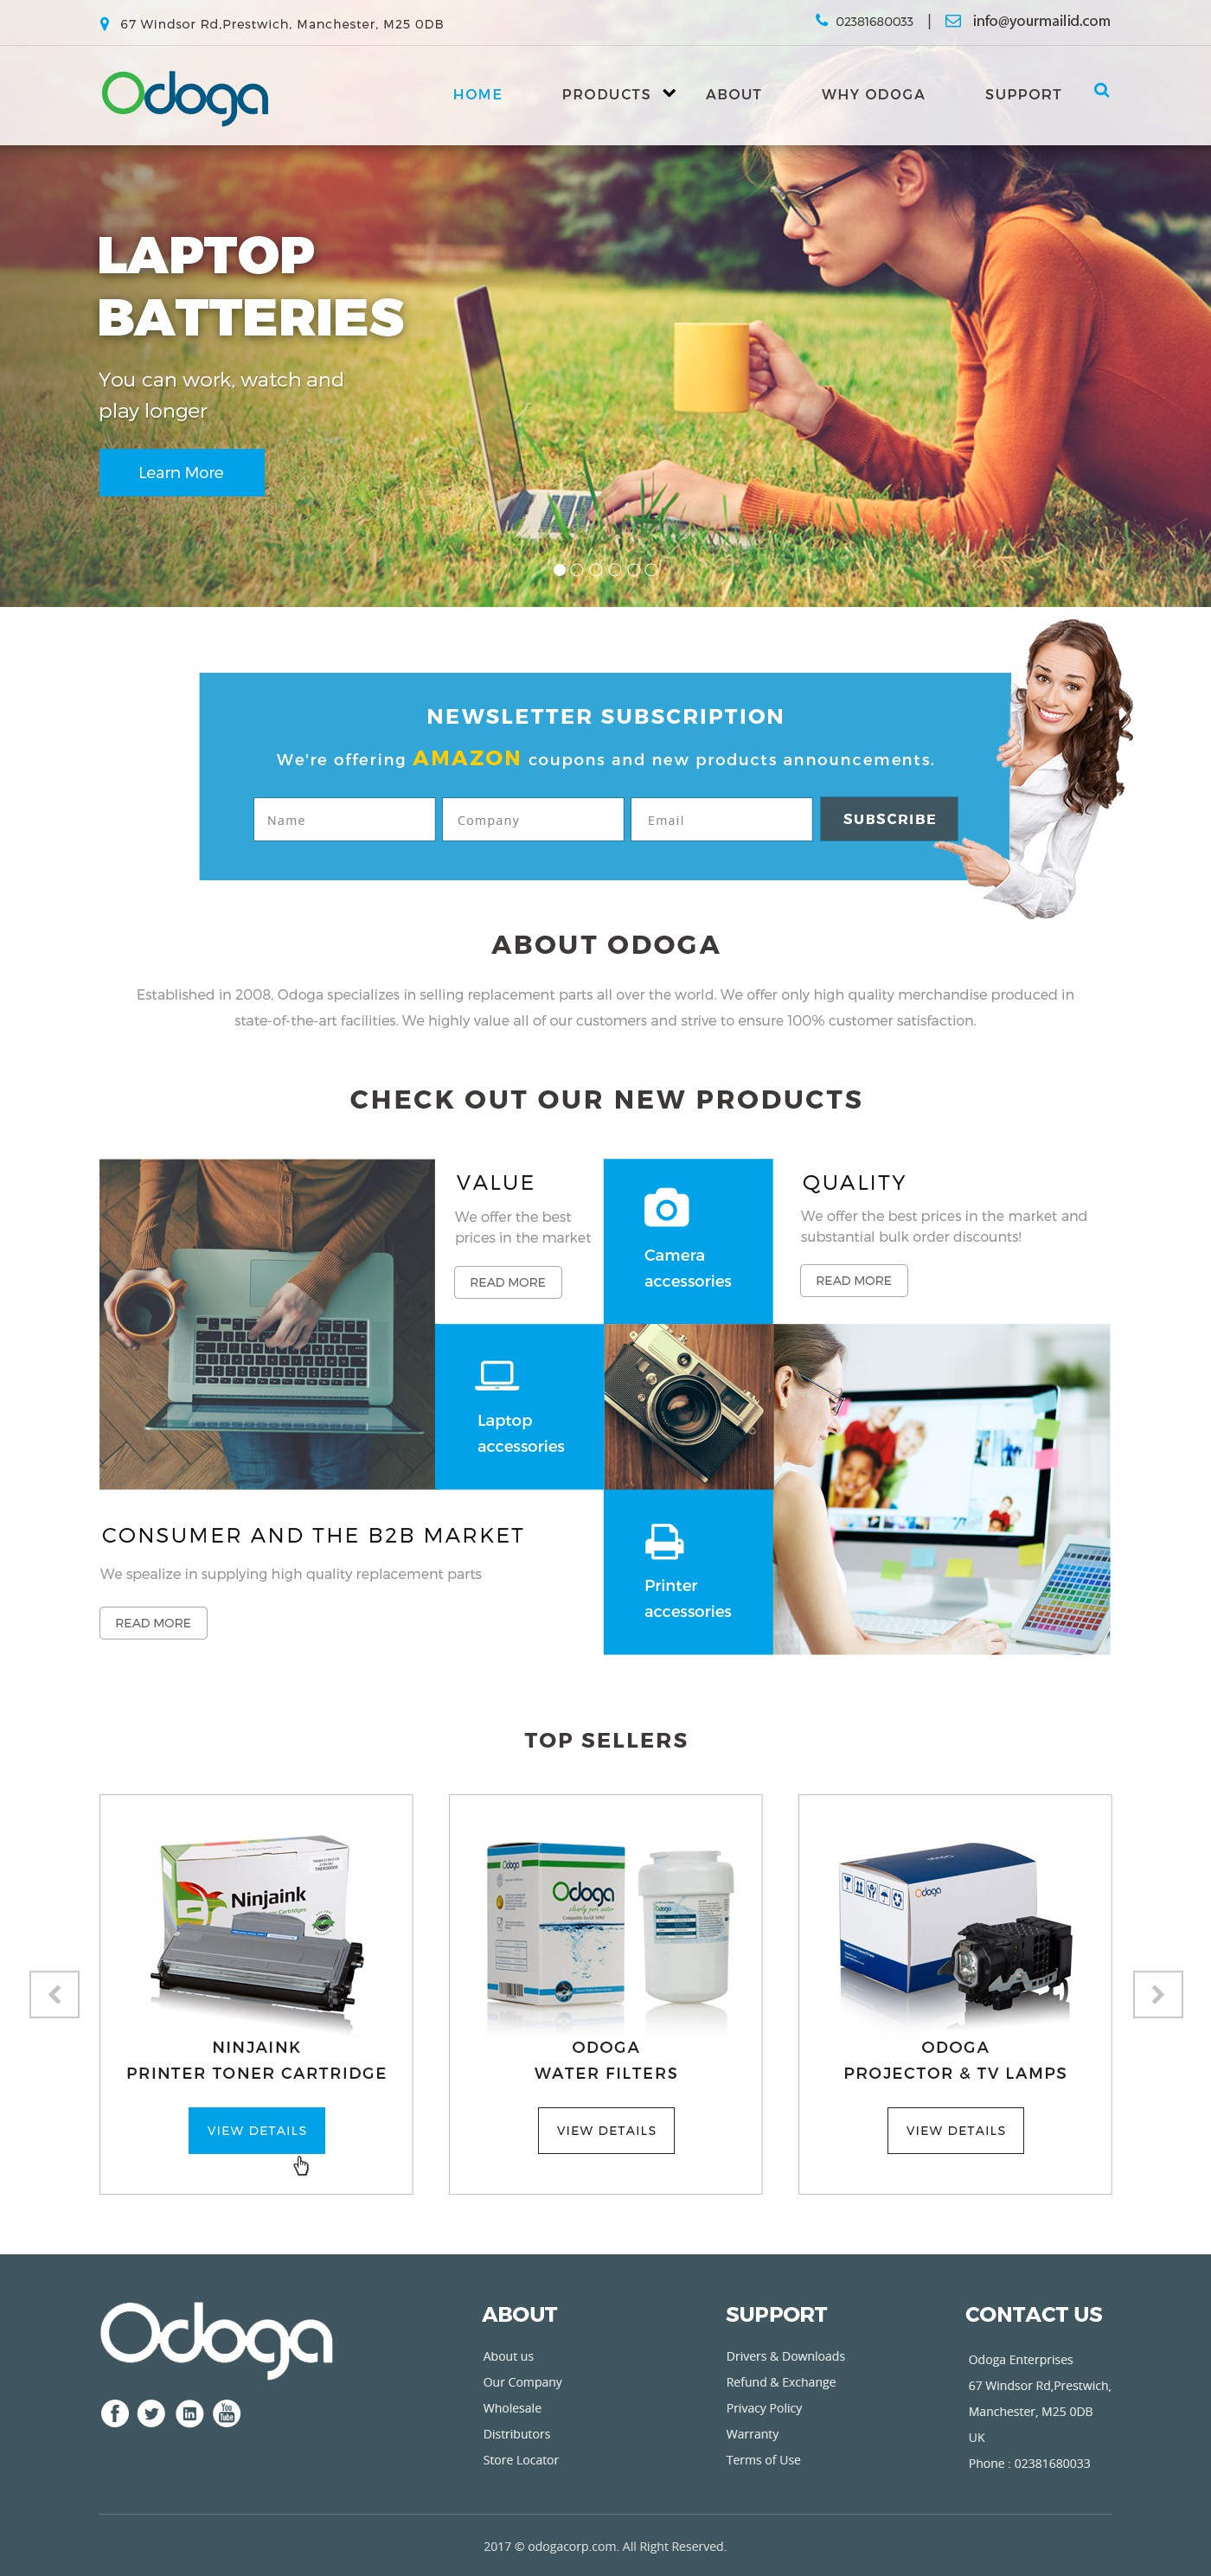 Ecommerce brand needs a new look for its website